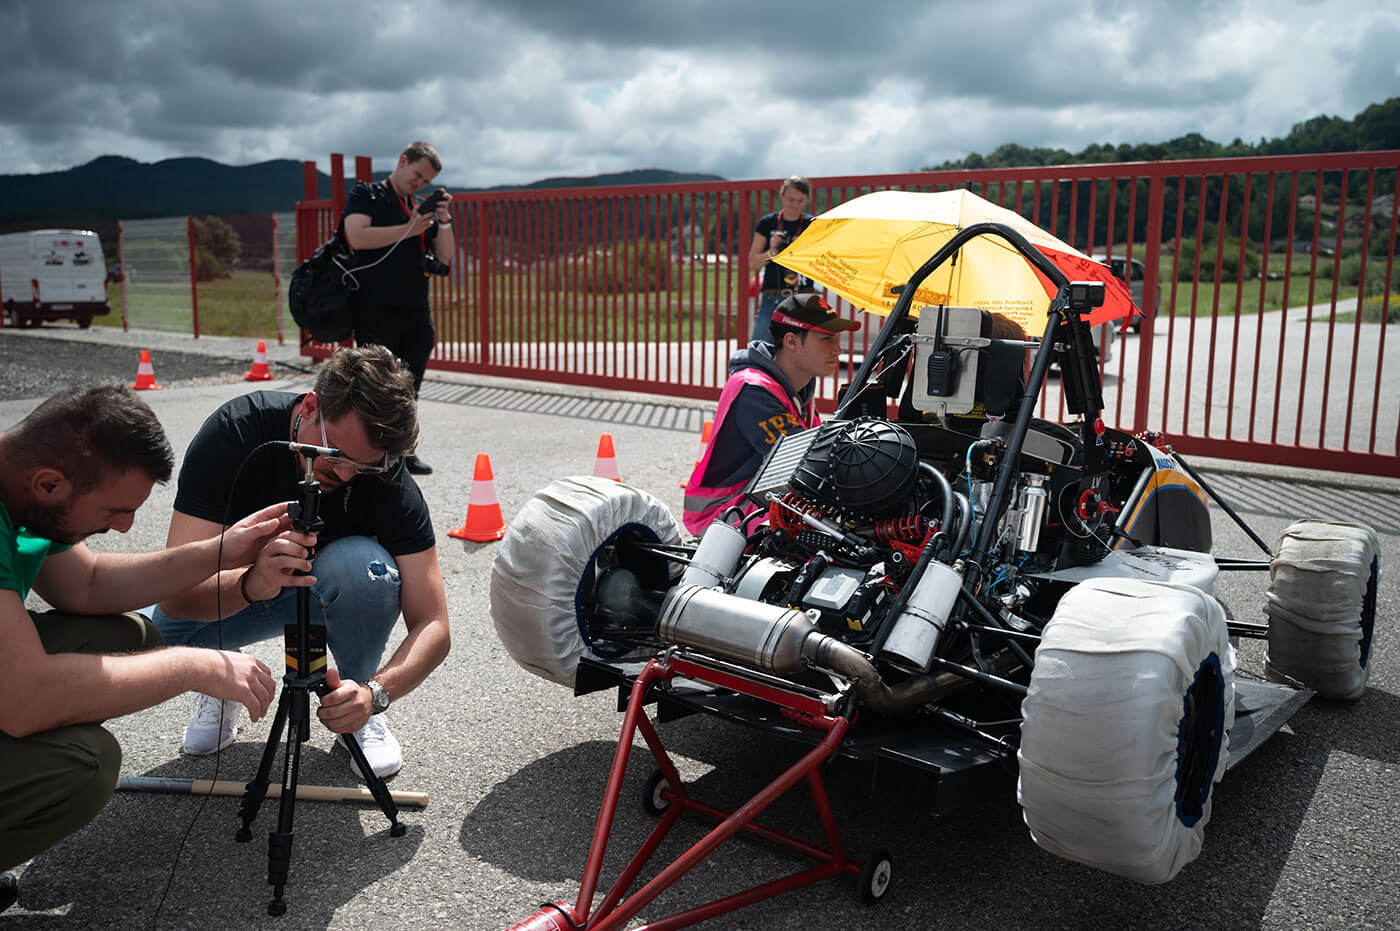 Dewesoft team fixing microphone to measure noise from the vehicle - formula race car